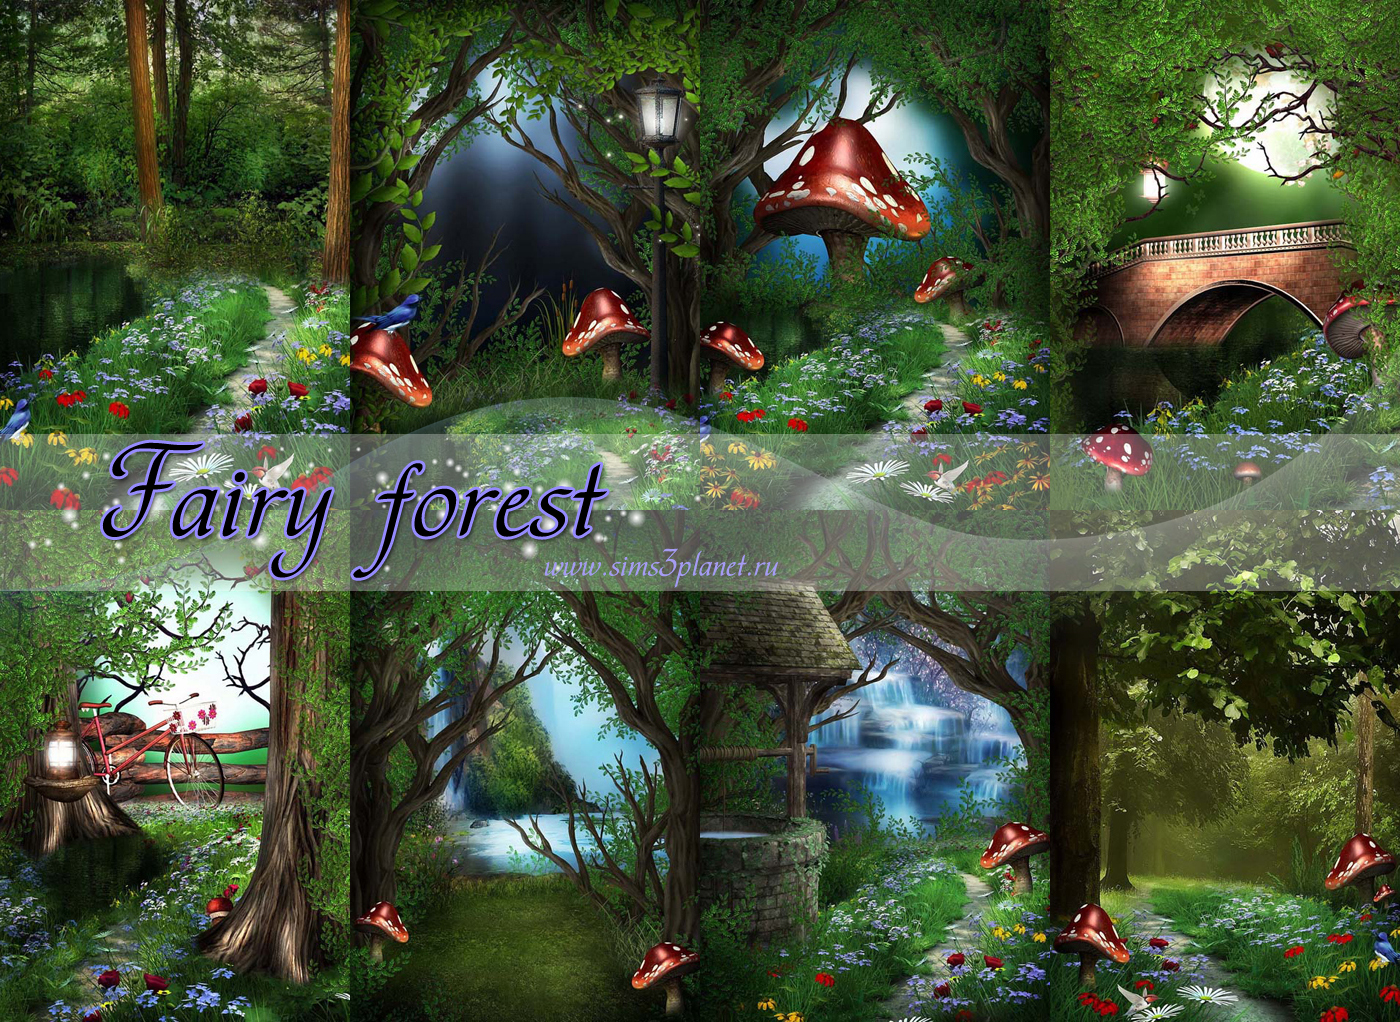 Fairy forest by Torri